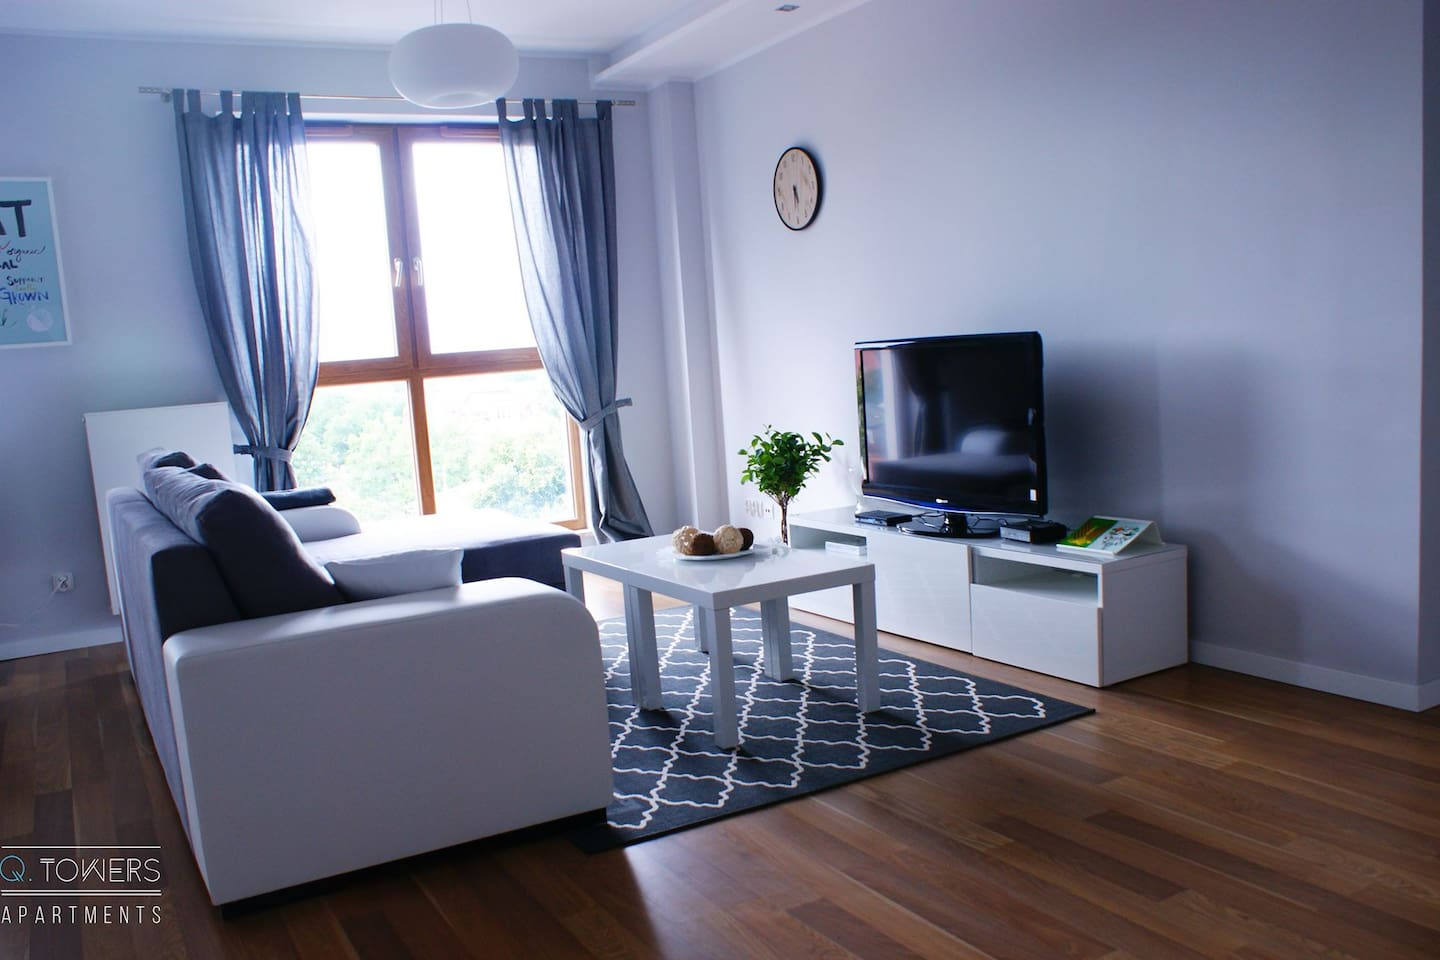 Q.Towers Apartments NEW APARTMENT in Gdask! - Apartments for Rent in Gdask,